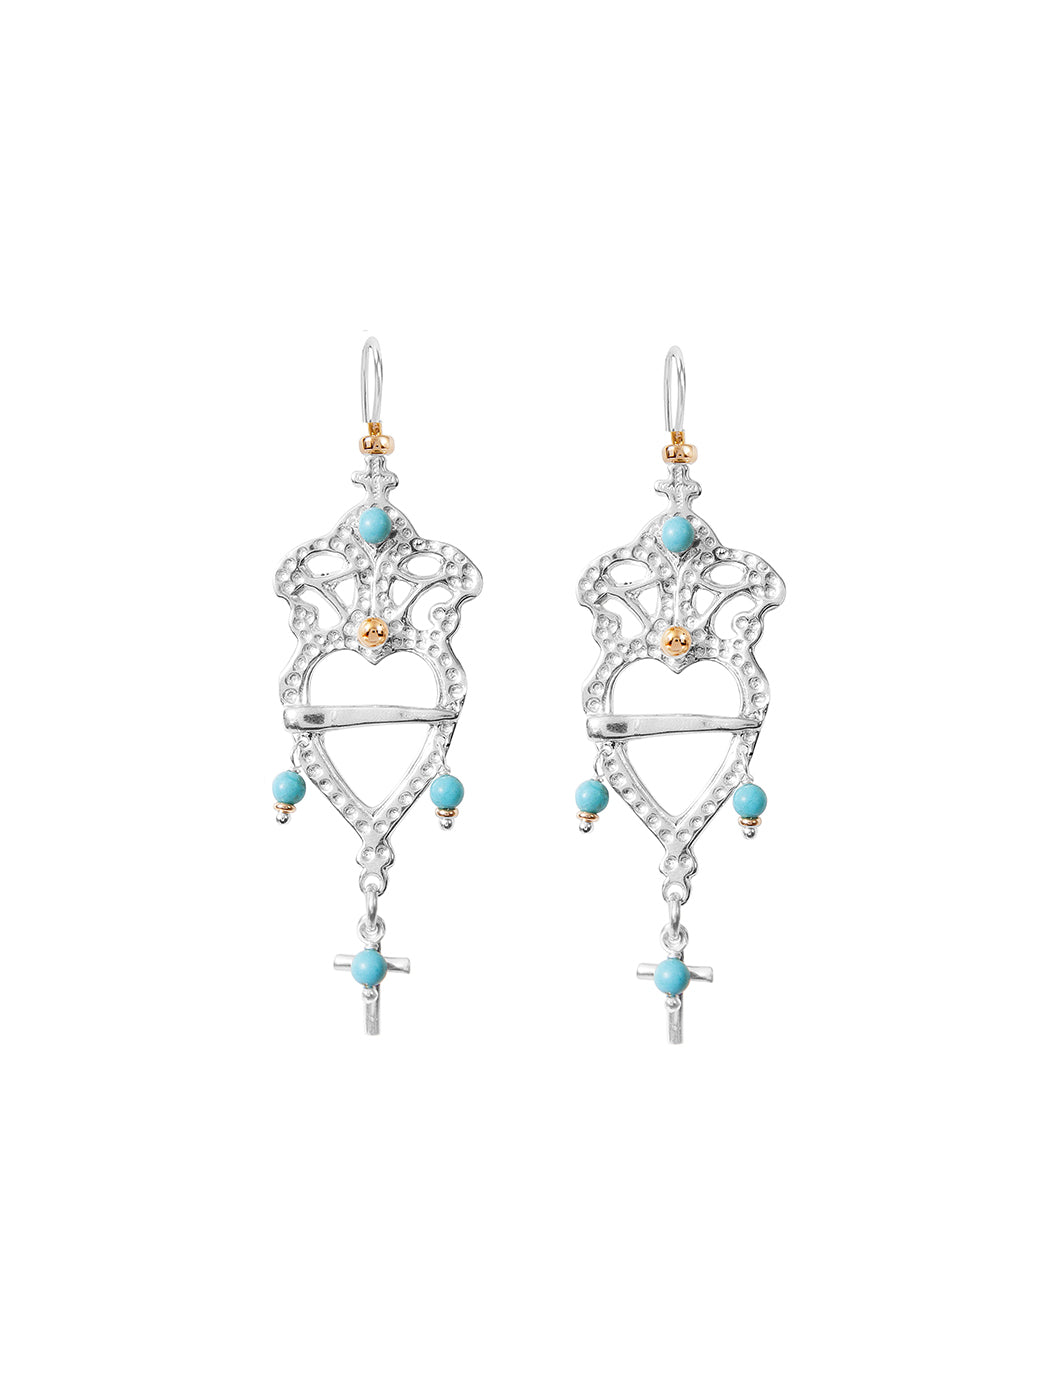 Fiorina Jewellery Heartlore Earrings Turquoise